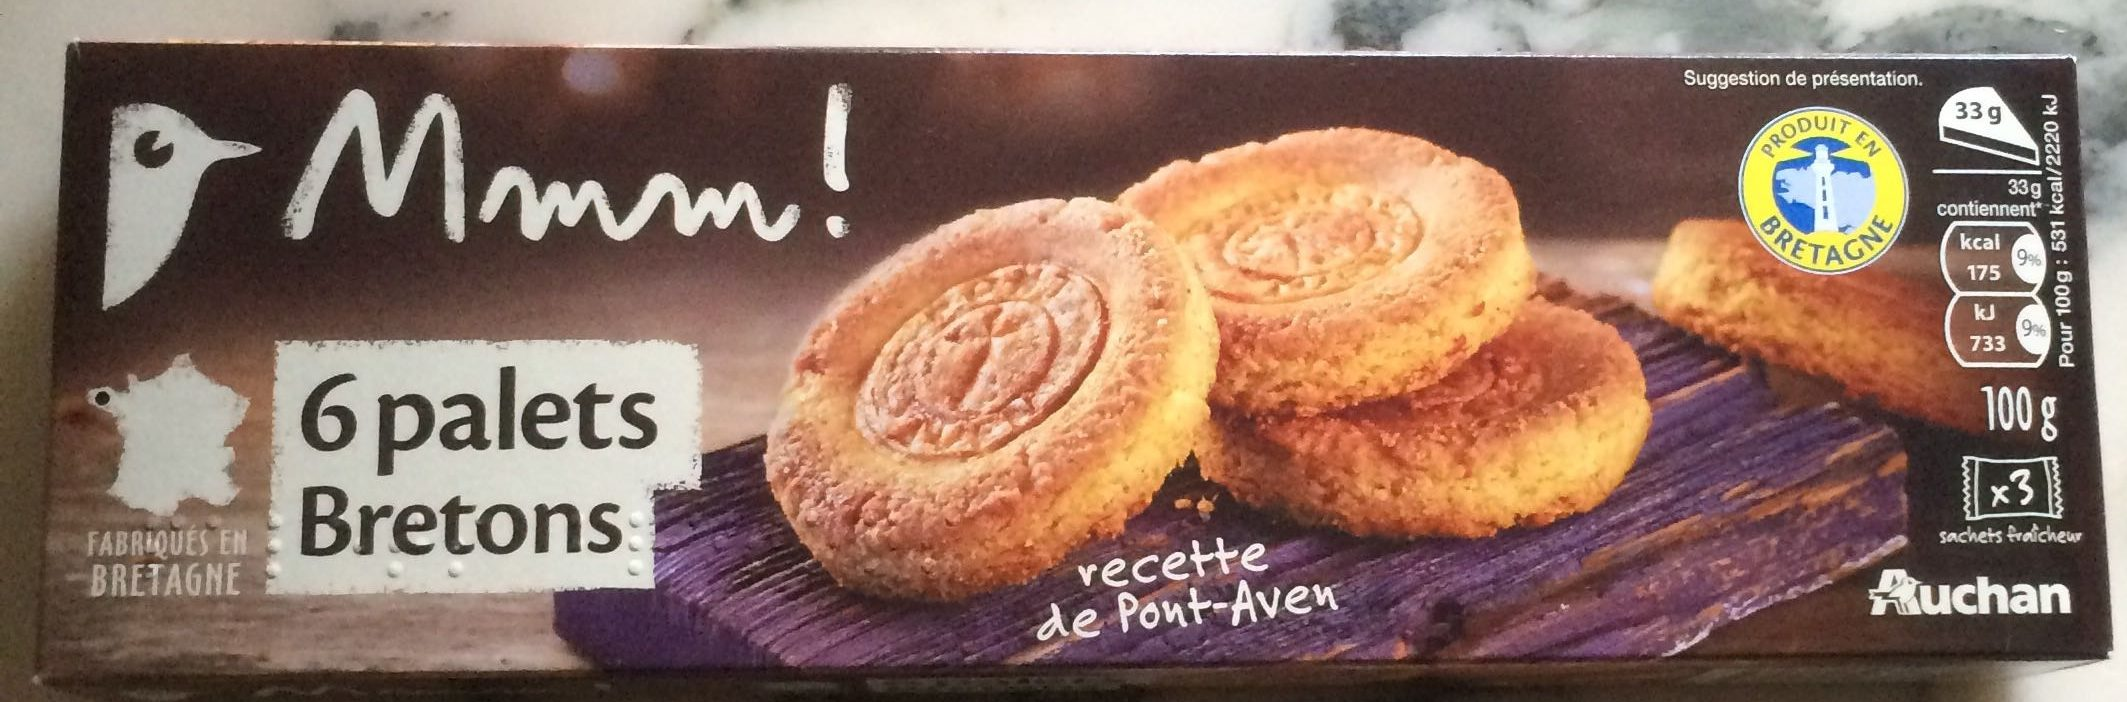 6 palets bretons - Product